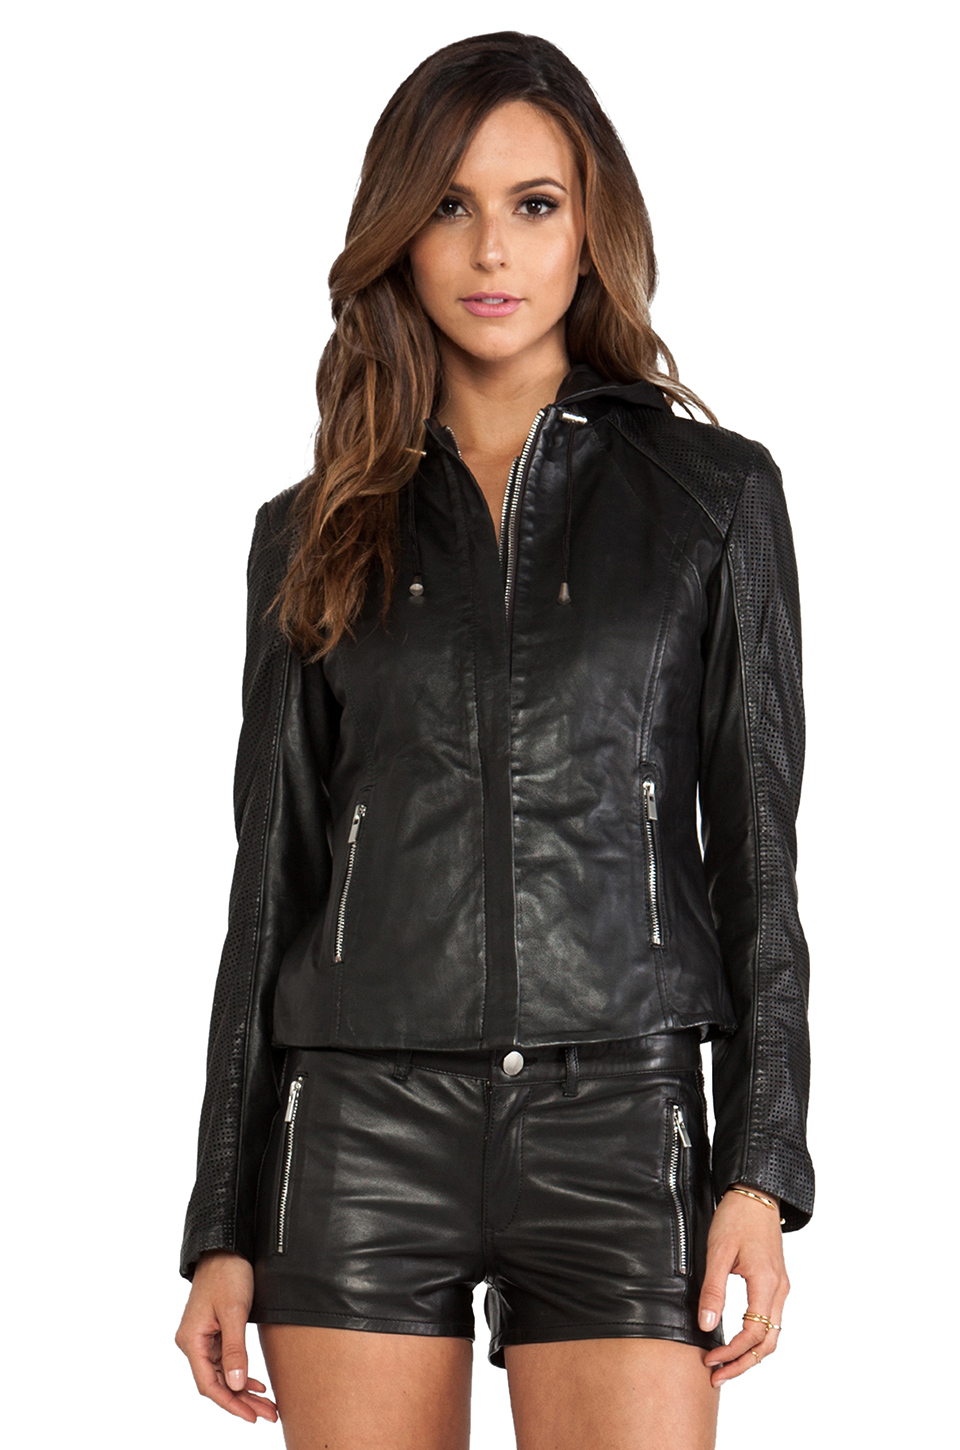 La Marque Collection Audrey Biker Jacket in Black | REVOLVE